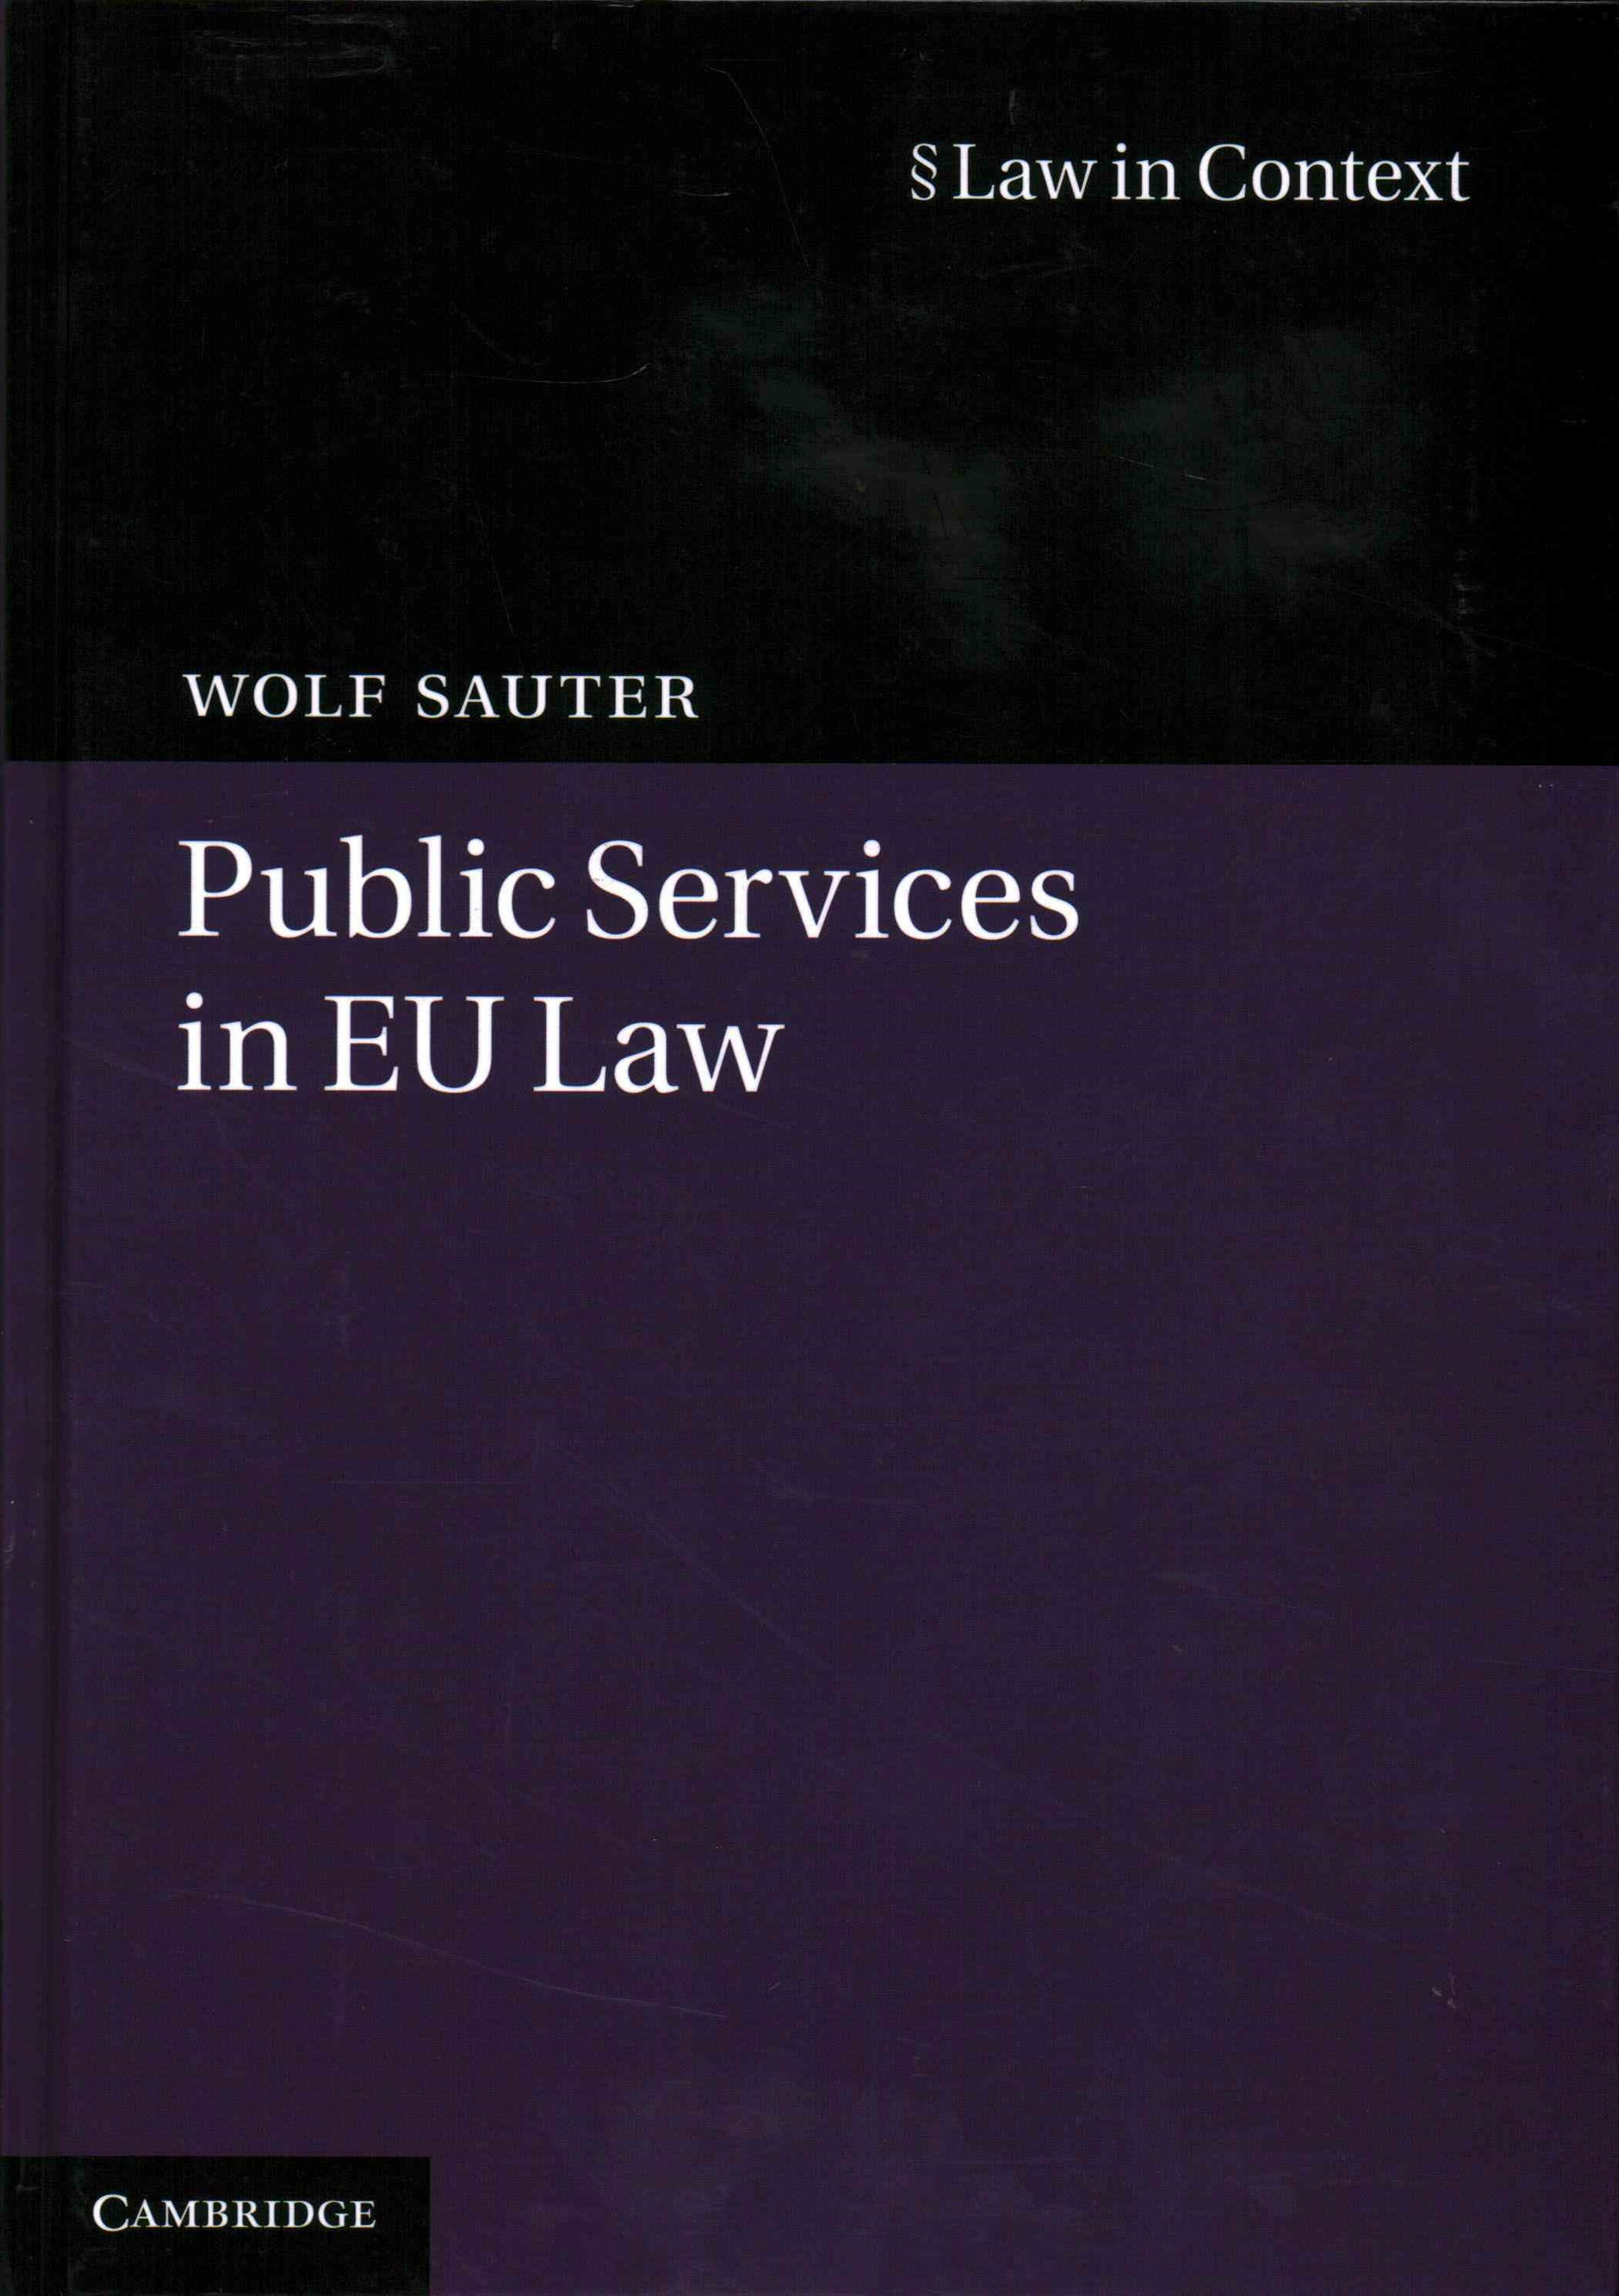 Public Services in EU Law